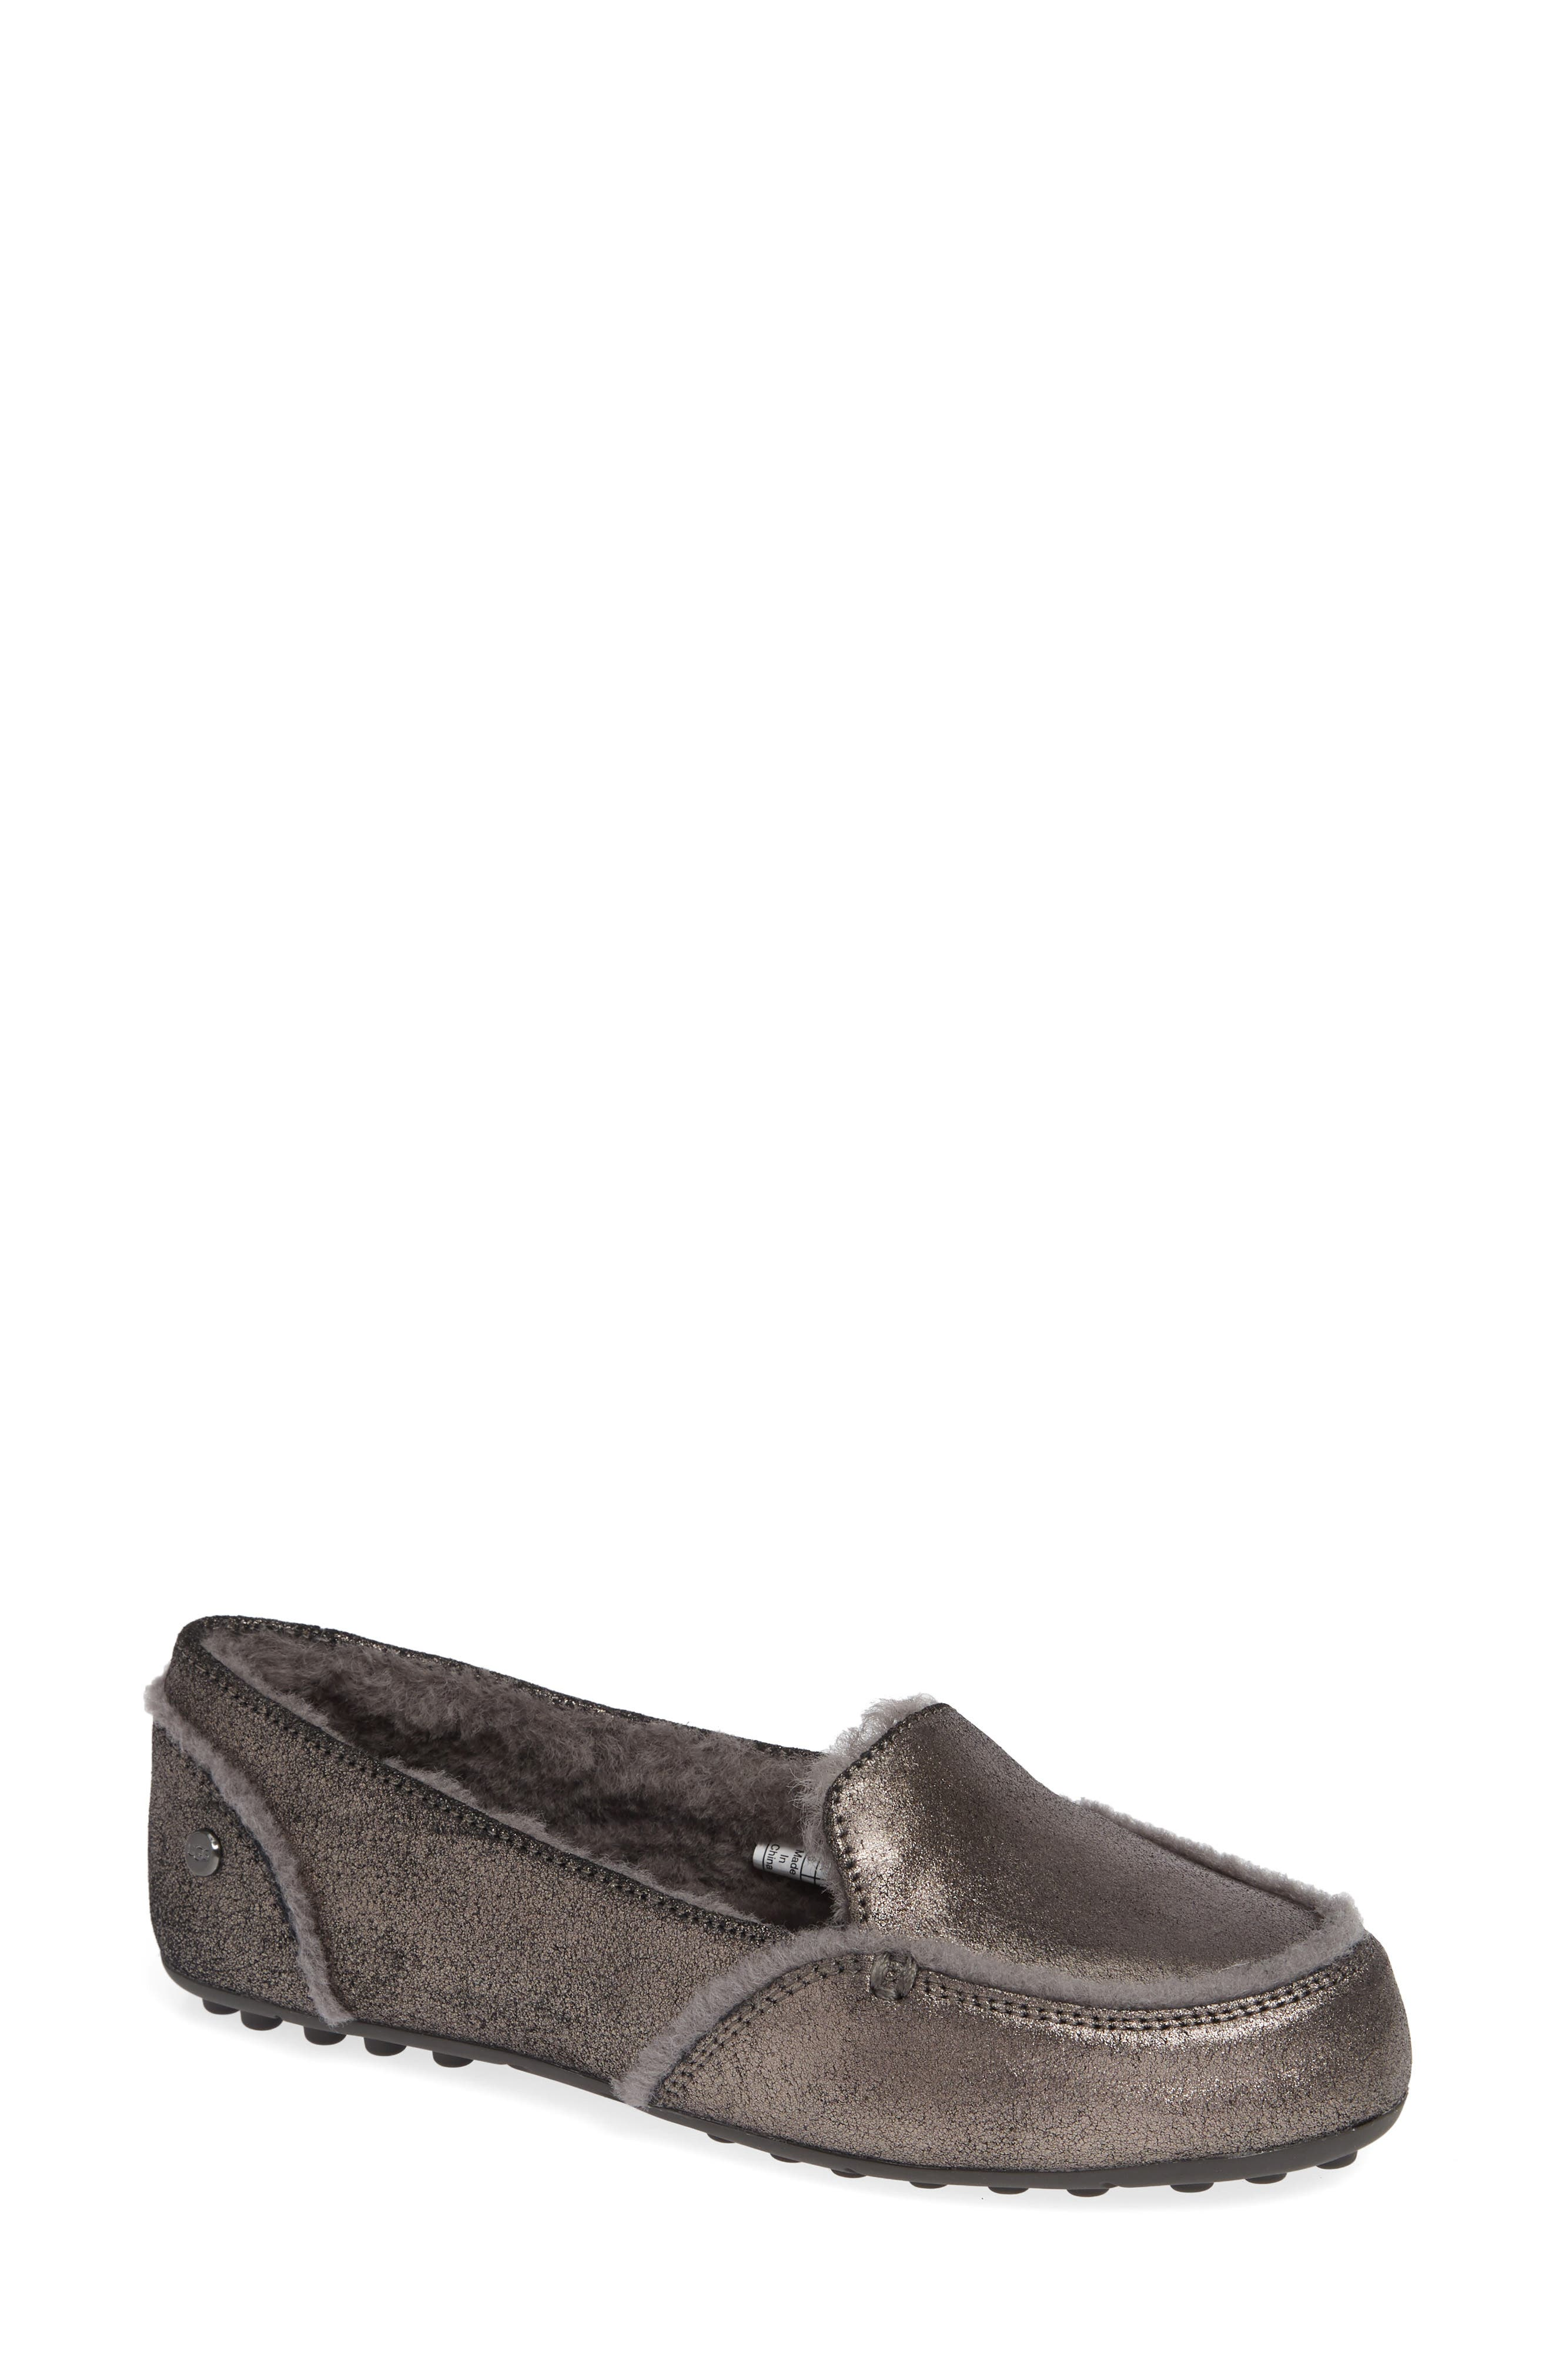 Hailey Metallic Slipper,                             Main thumbnail 1, color,                             GUNMETAL